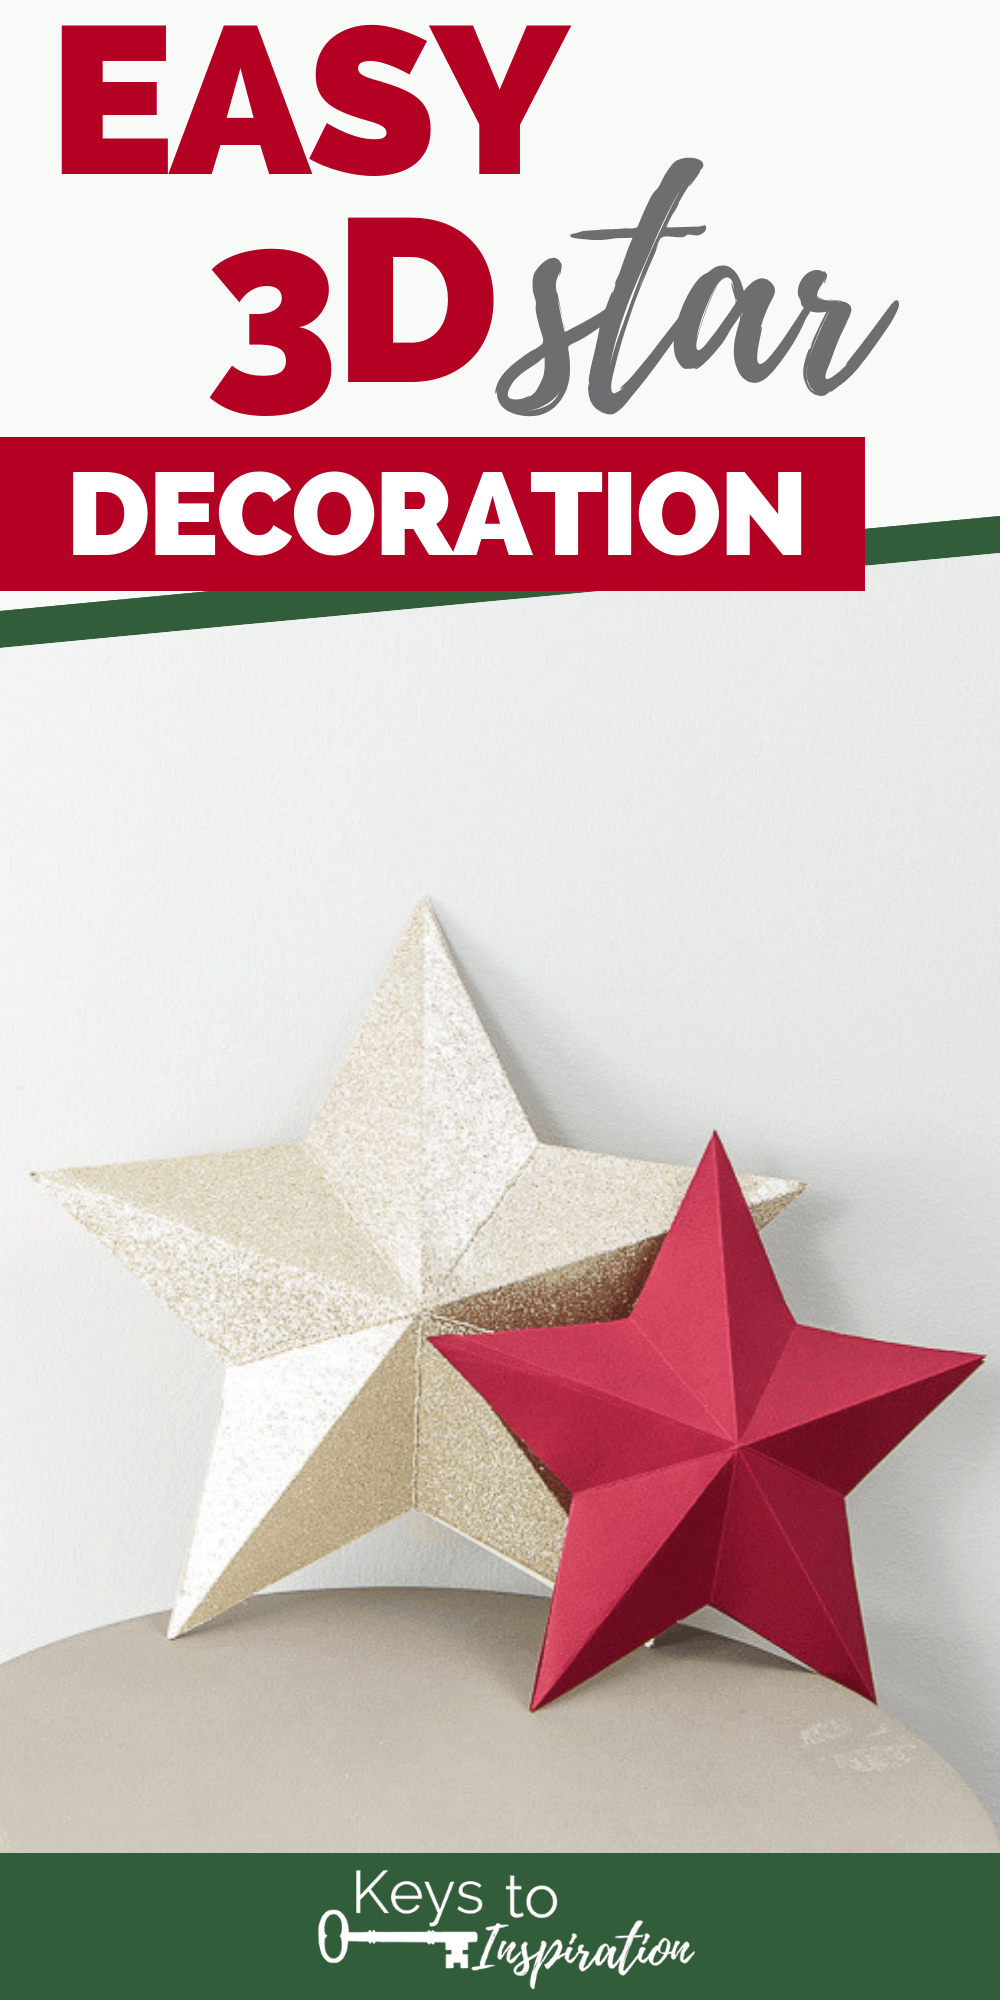 3D star decorations for Christmas red and gold glitter